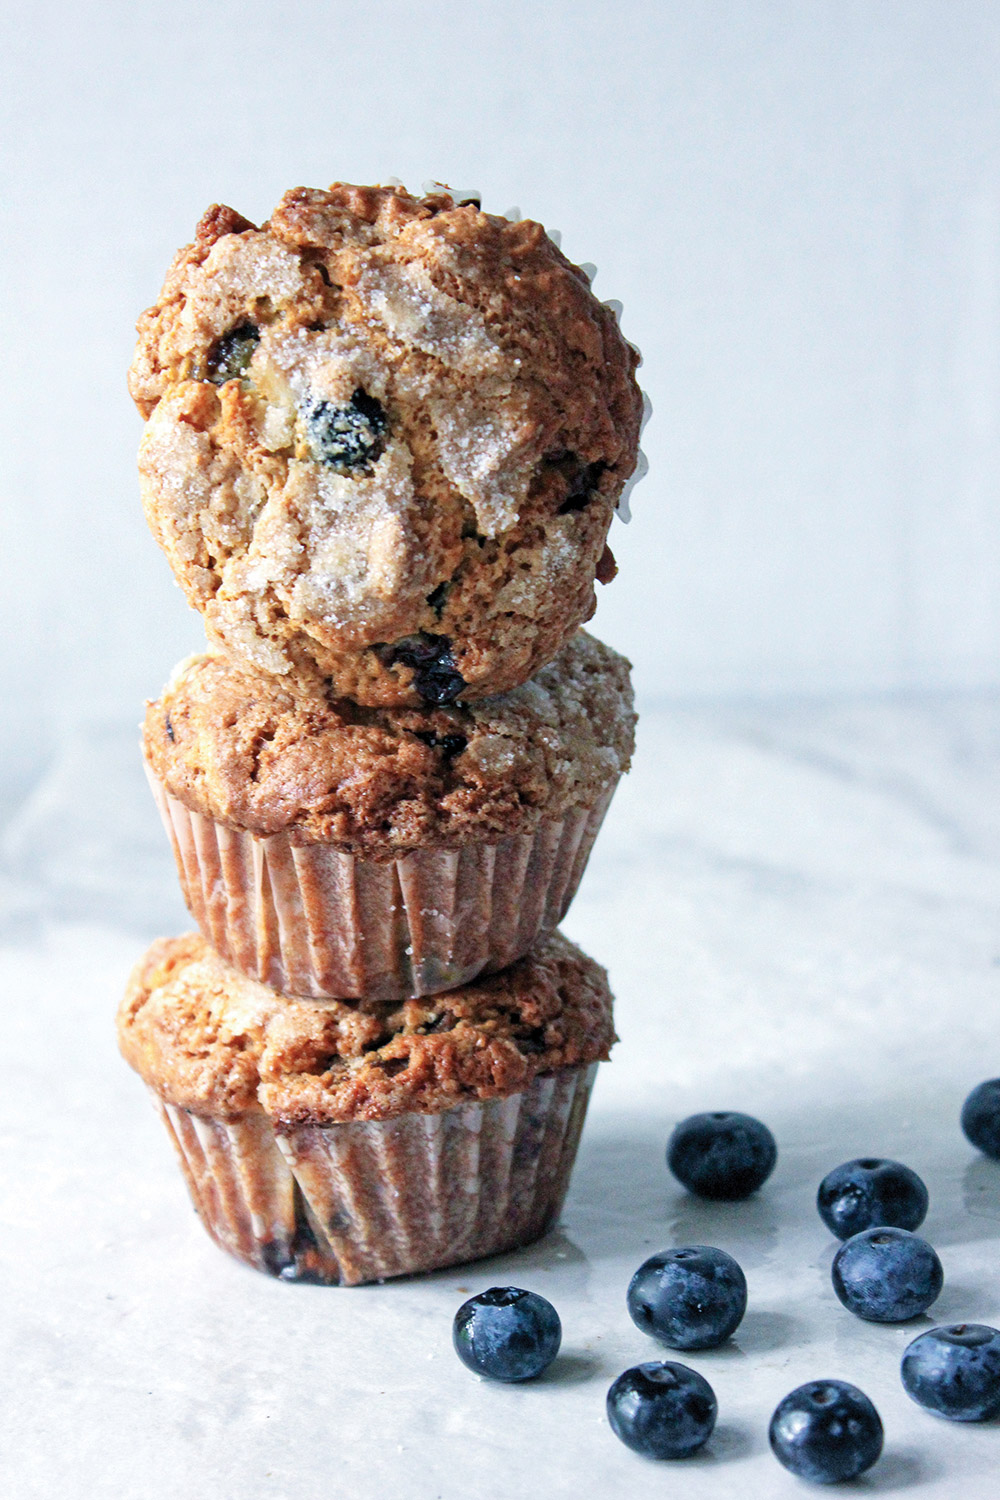 Three blueberry muffin tower with top muffin tilted to show sugar crusted top.  Blueberries in background.